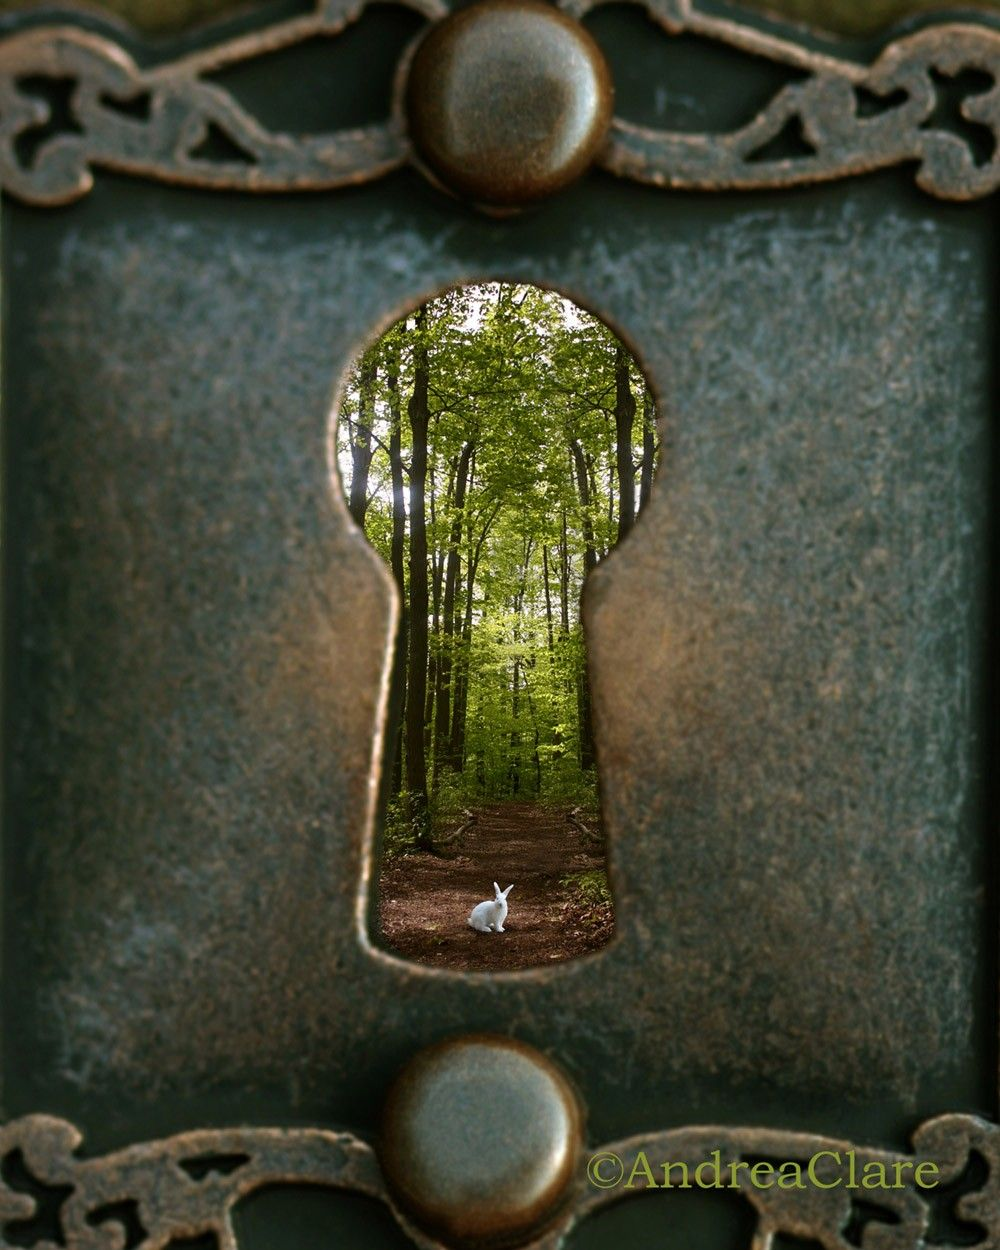 Alice in wonderland white rabbit photograph fine art photography, Andrea Clare, Key Hole